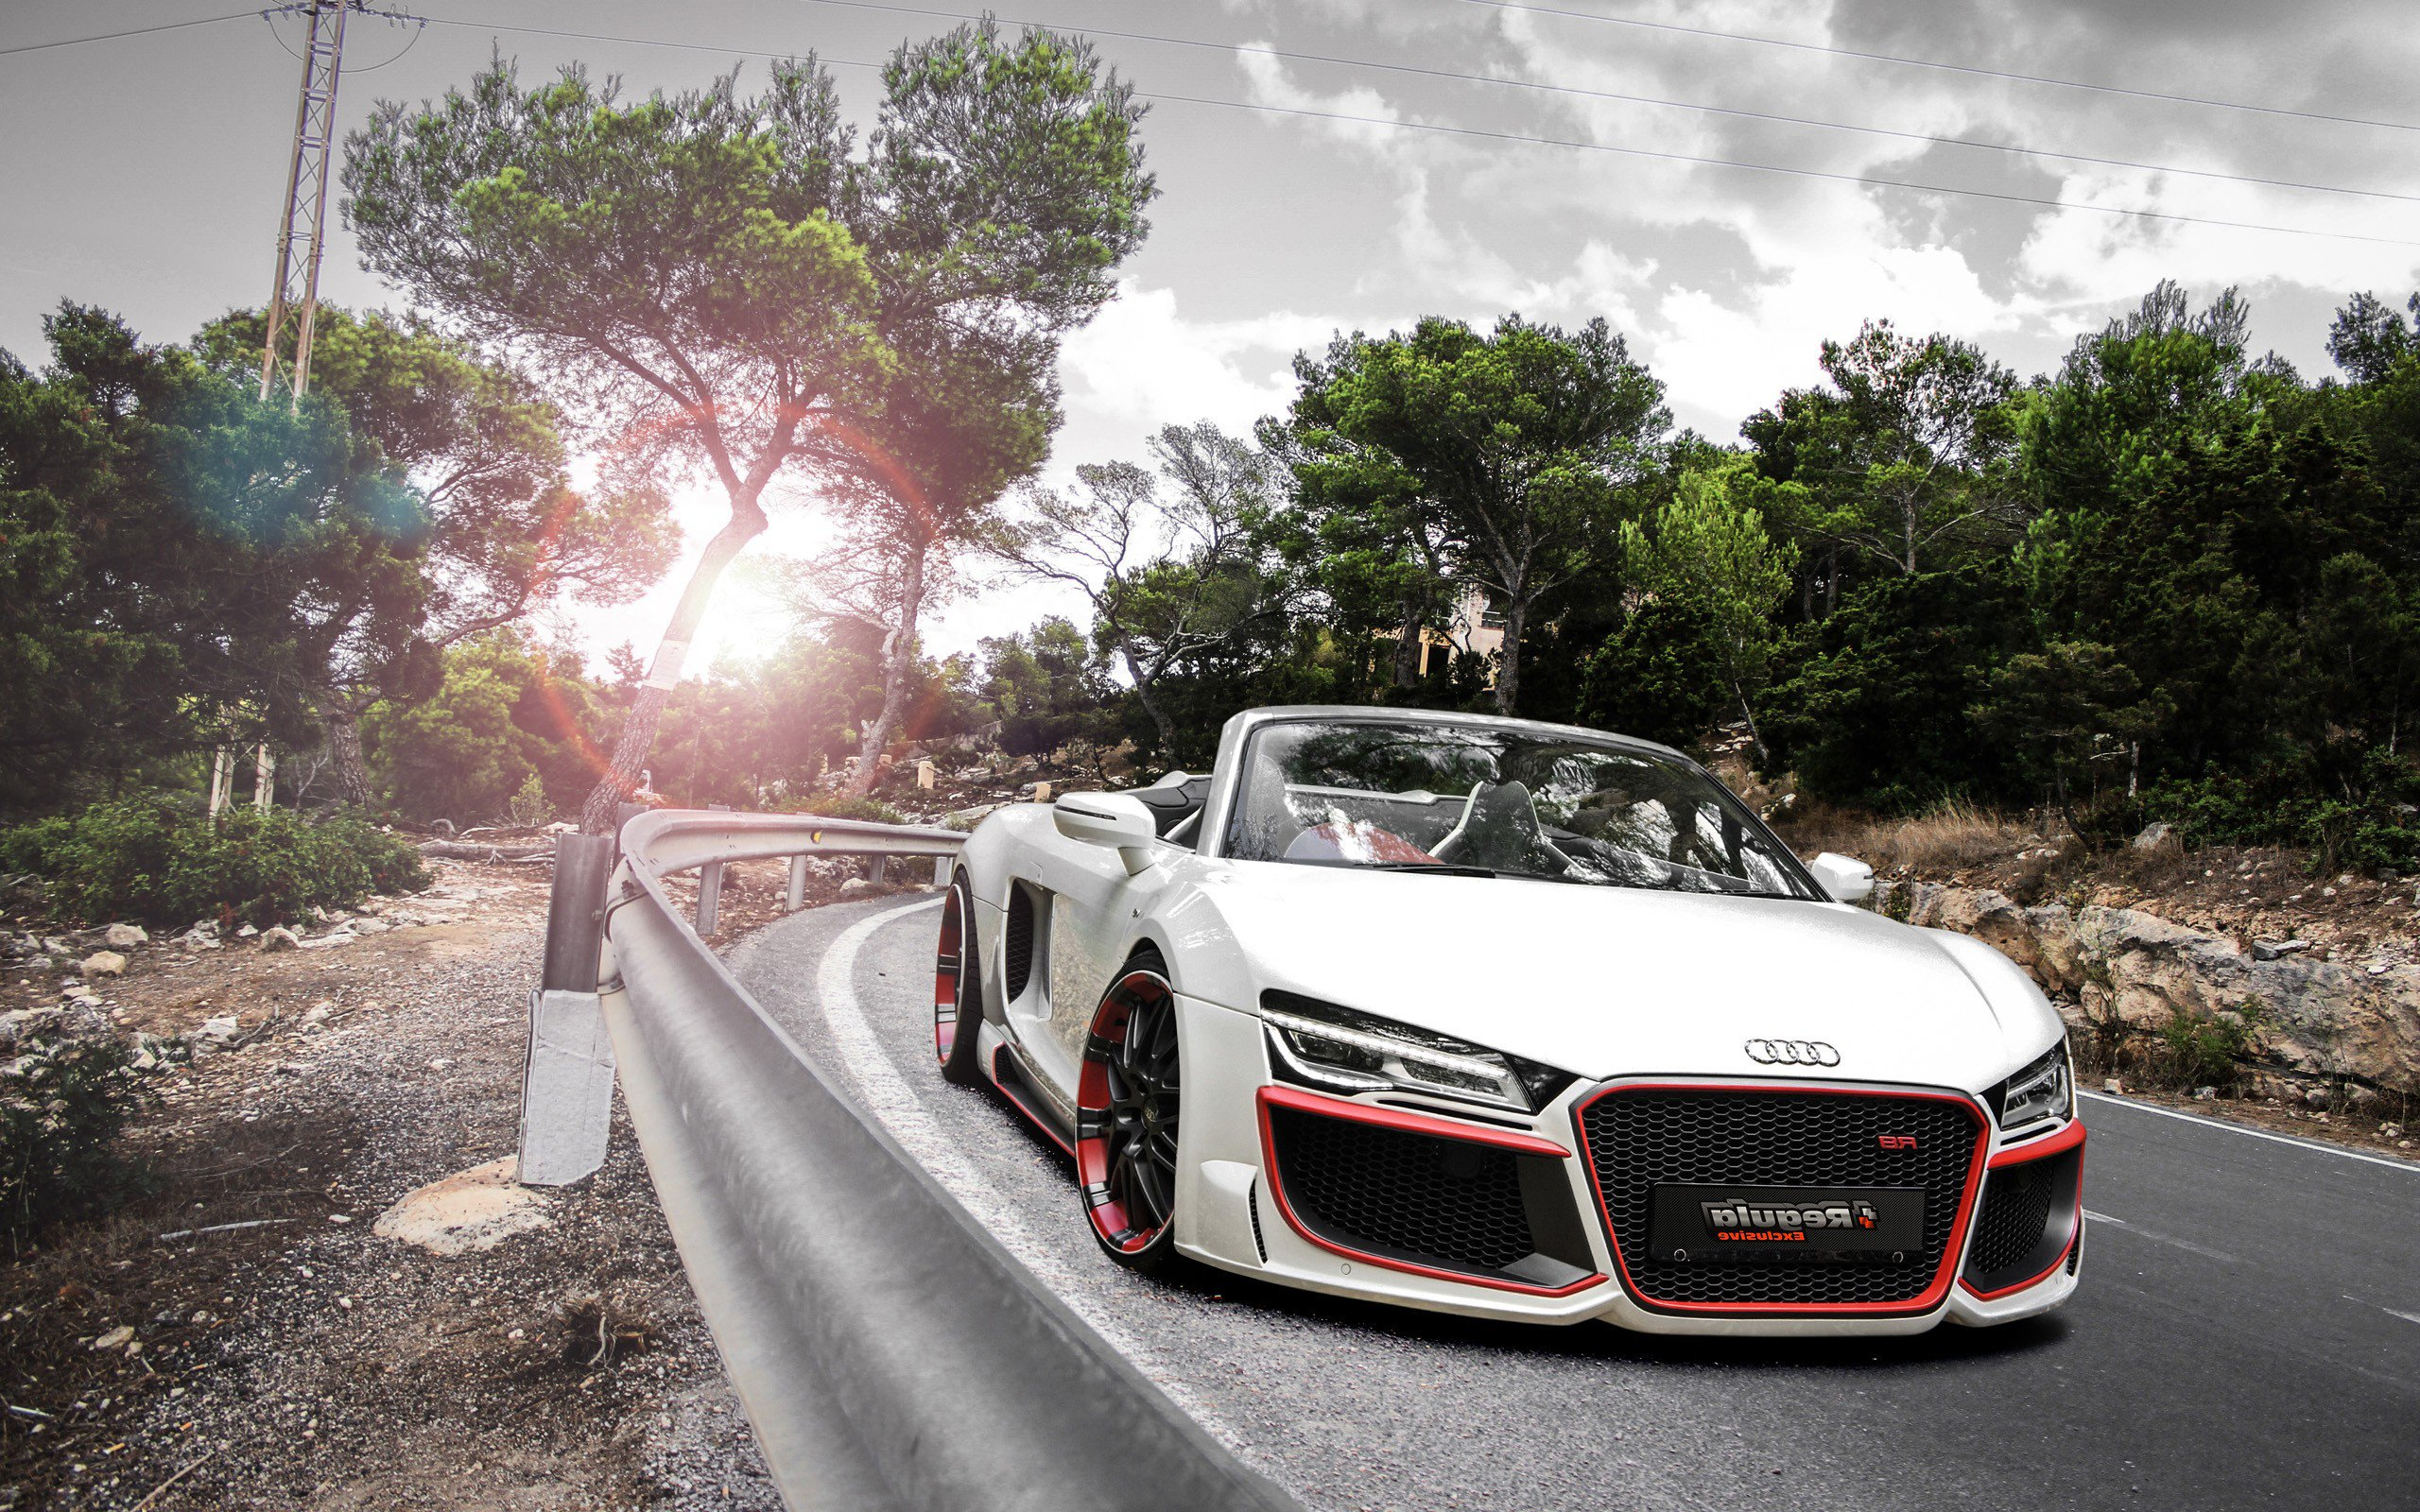 Audi R8 V10 Spyder Regula Laptop HD